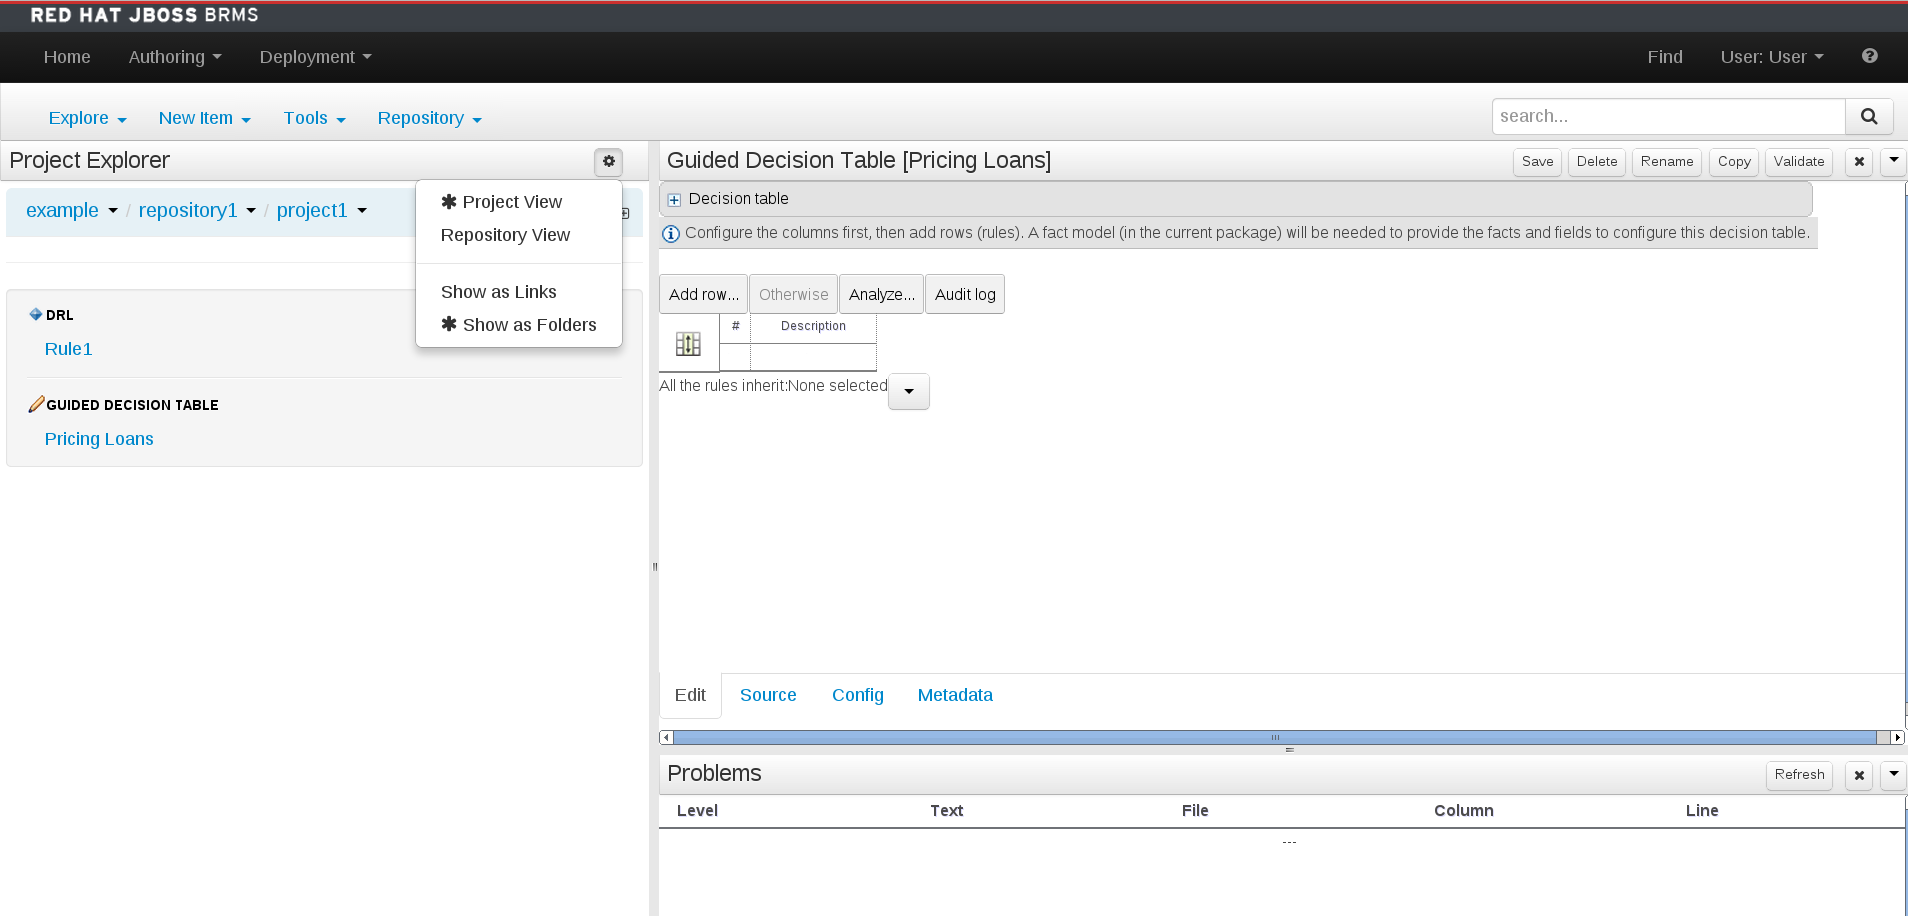 A screenshot of the BRMS Project Explorer